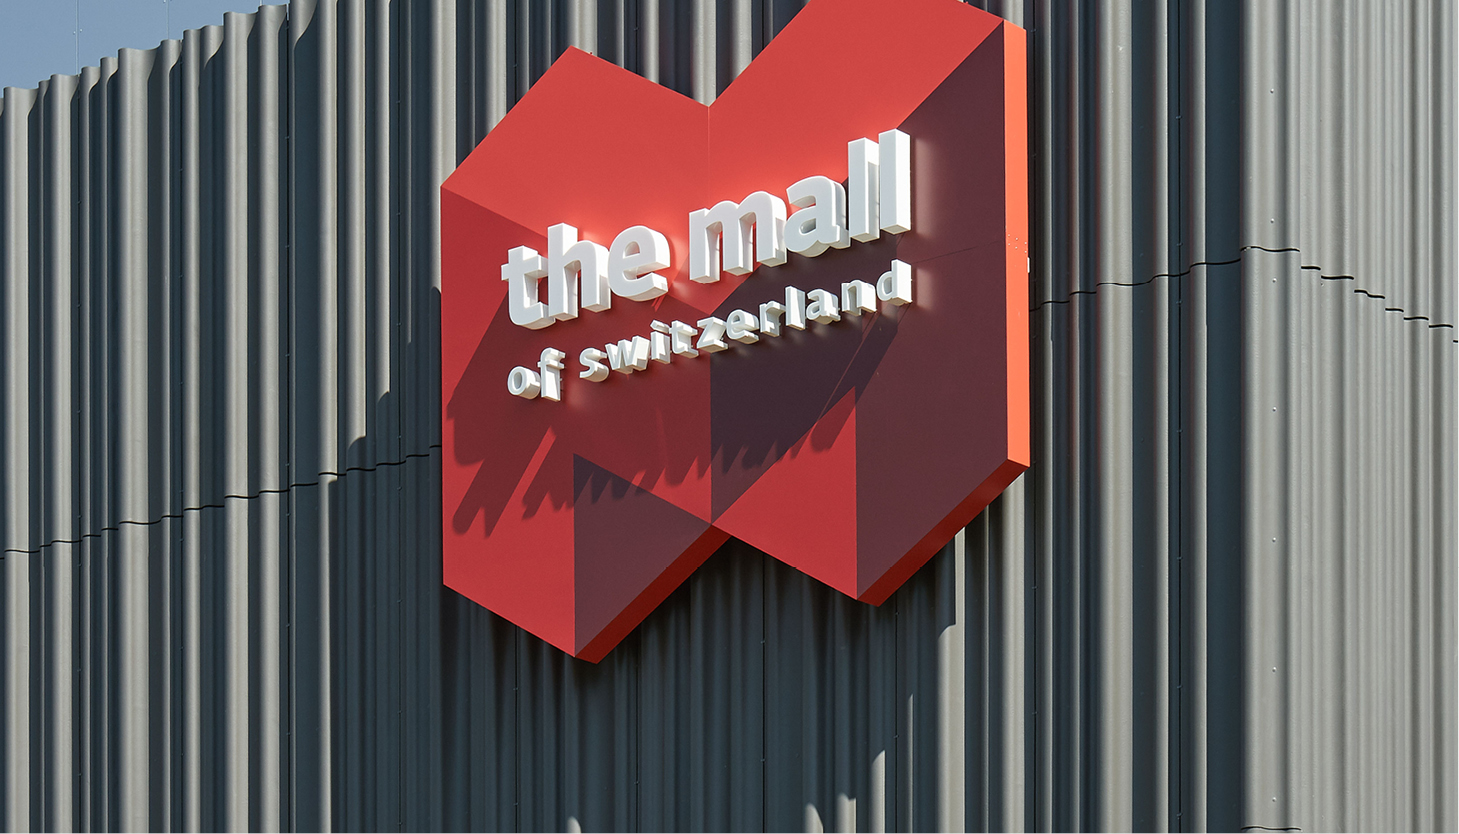 Inncempro_the_mall_700_400